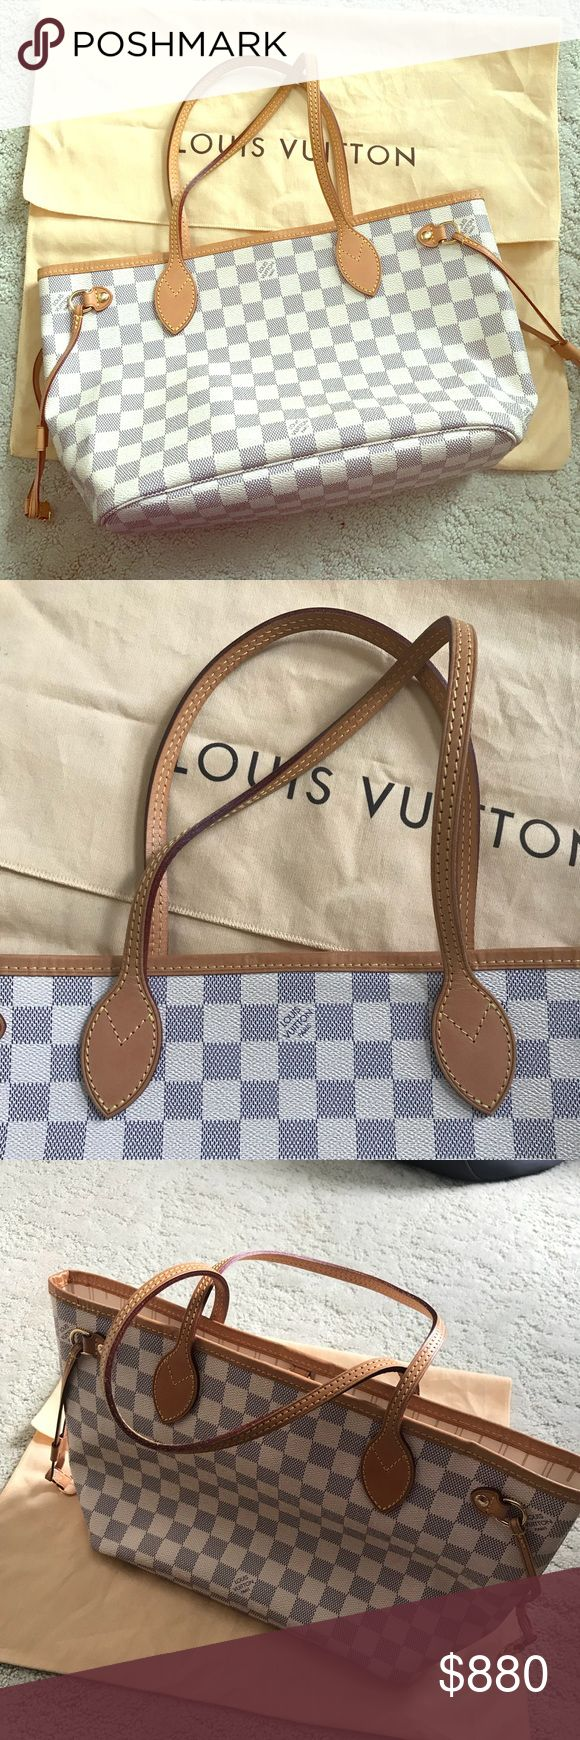 Louis Vuitton Damier Azur Neverfull PM 100% authentic Louis Vuitton Neverfull PM.  Excellent condition No rips, tears, or stains  Comes with dust bag and cloth  Smoke free, pet free home Date code VI5110 Louis Vuitton Bags Shoulder Bags